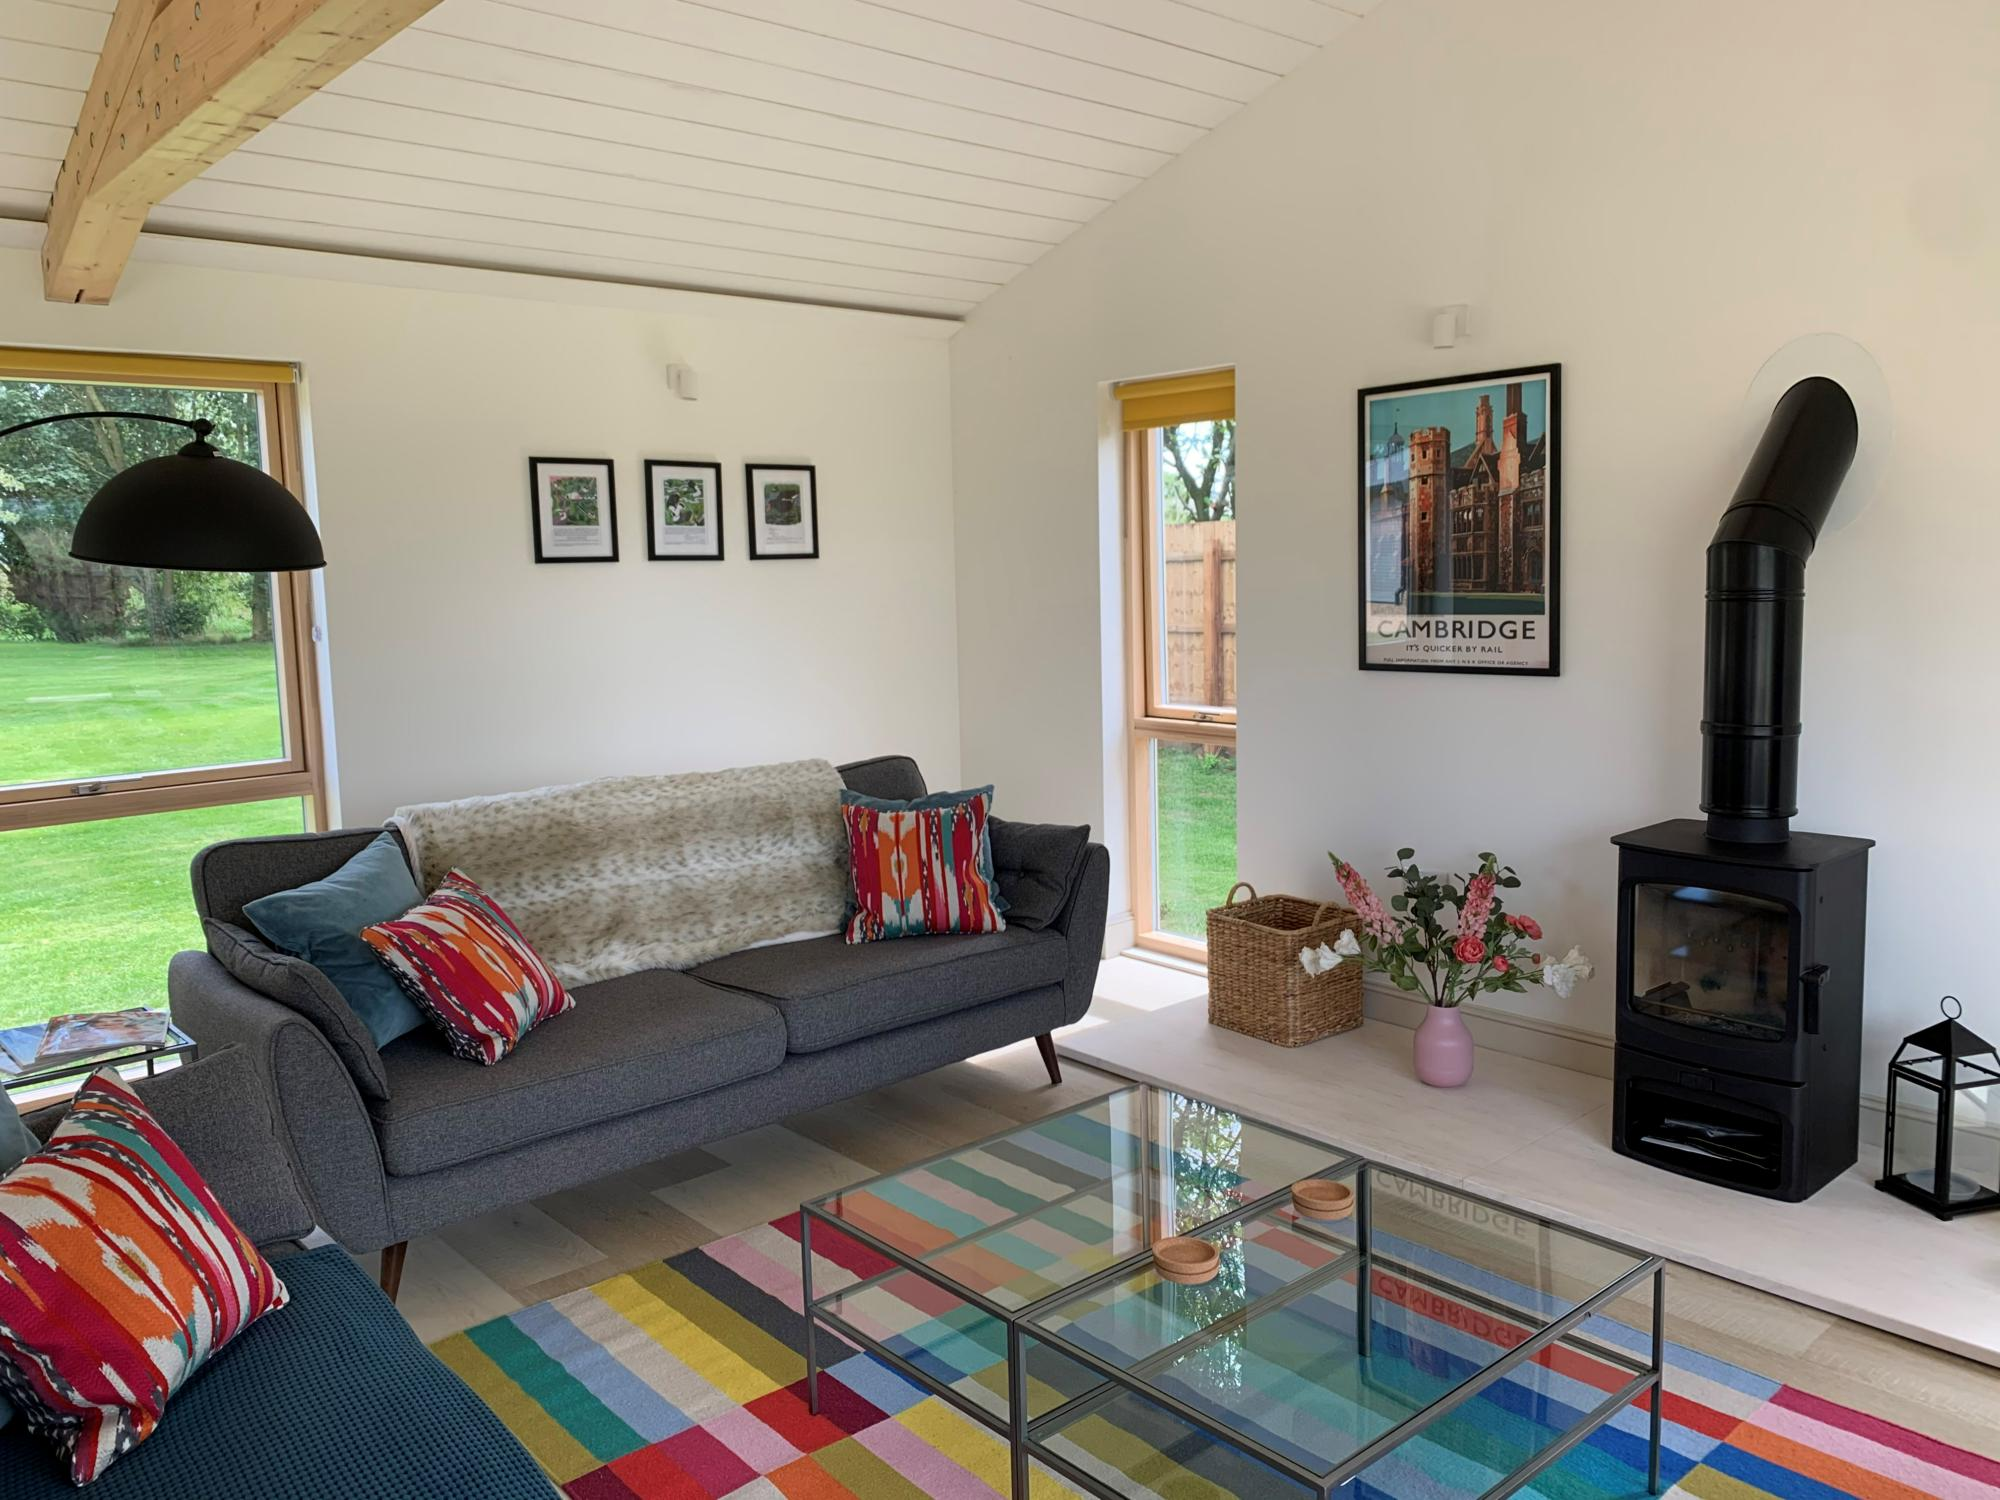 Self-Catering in Ely holidays at Cool Places